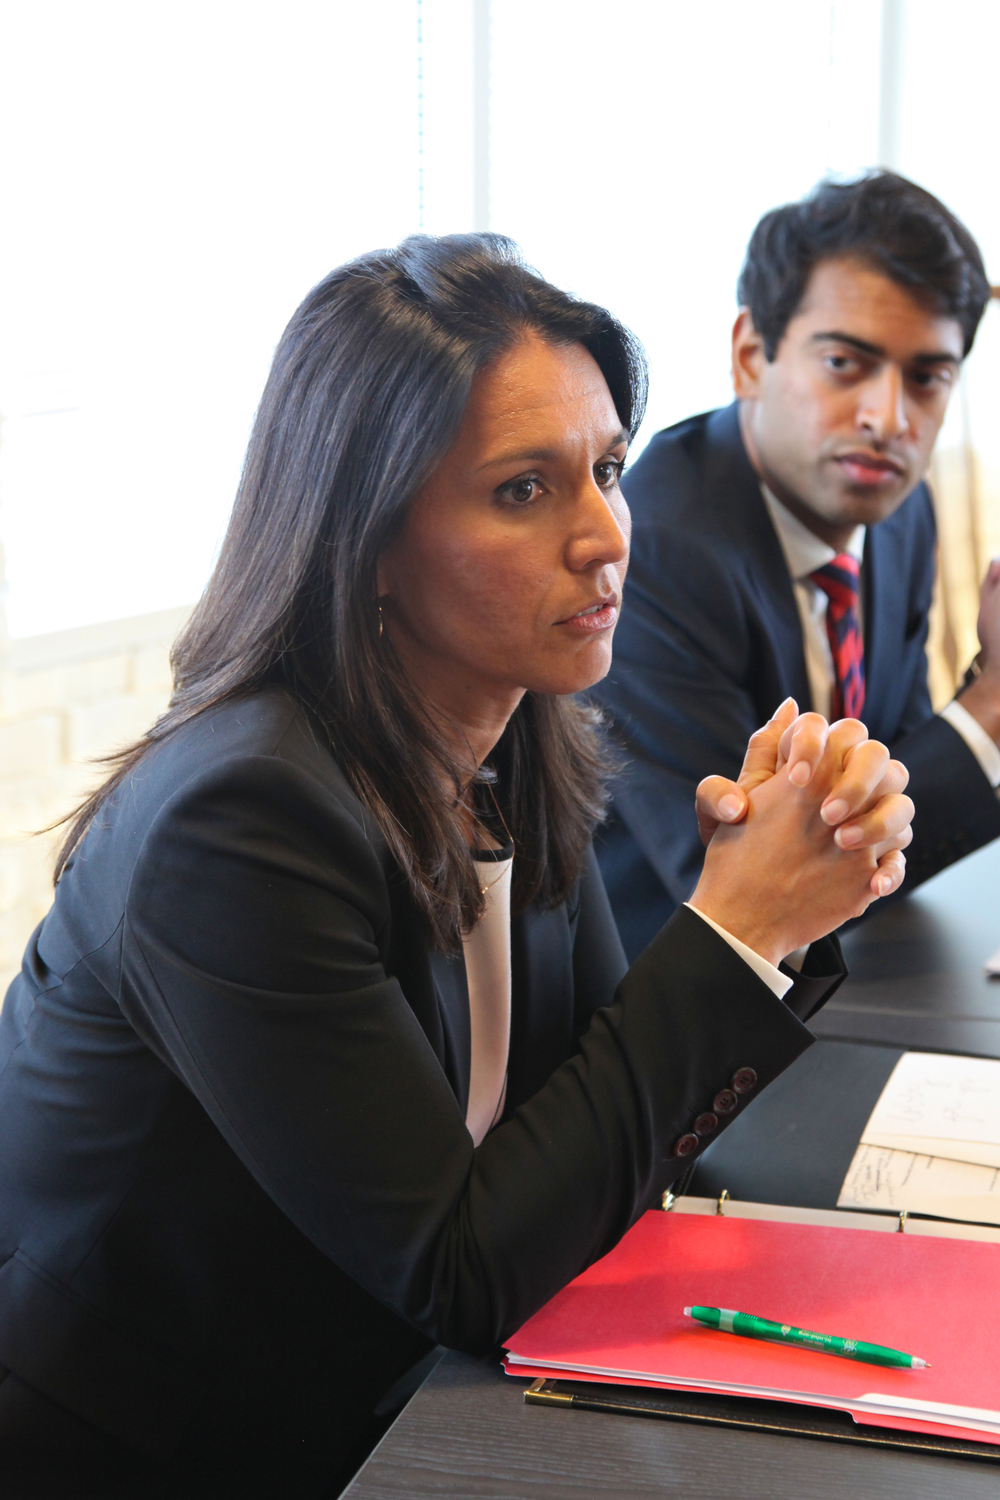 From left to right: Congresswoman Tulsi Gabbard outlines legislative priorities for the Future Caucus as MAP Co-Founder Steven Olikara looks on. © Liz Gorman